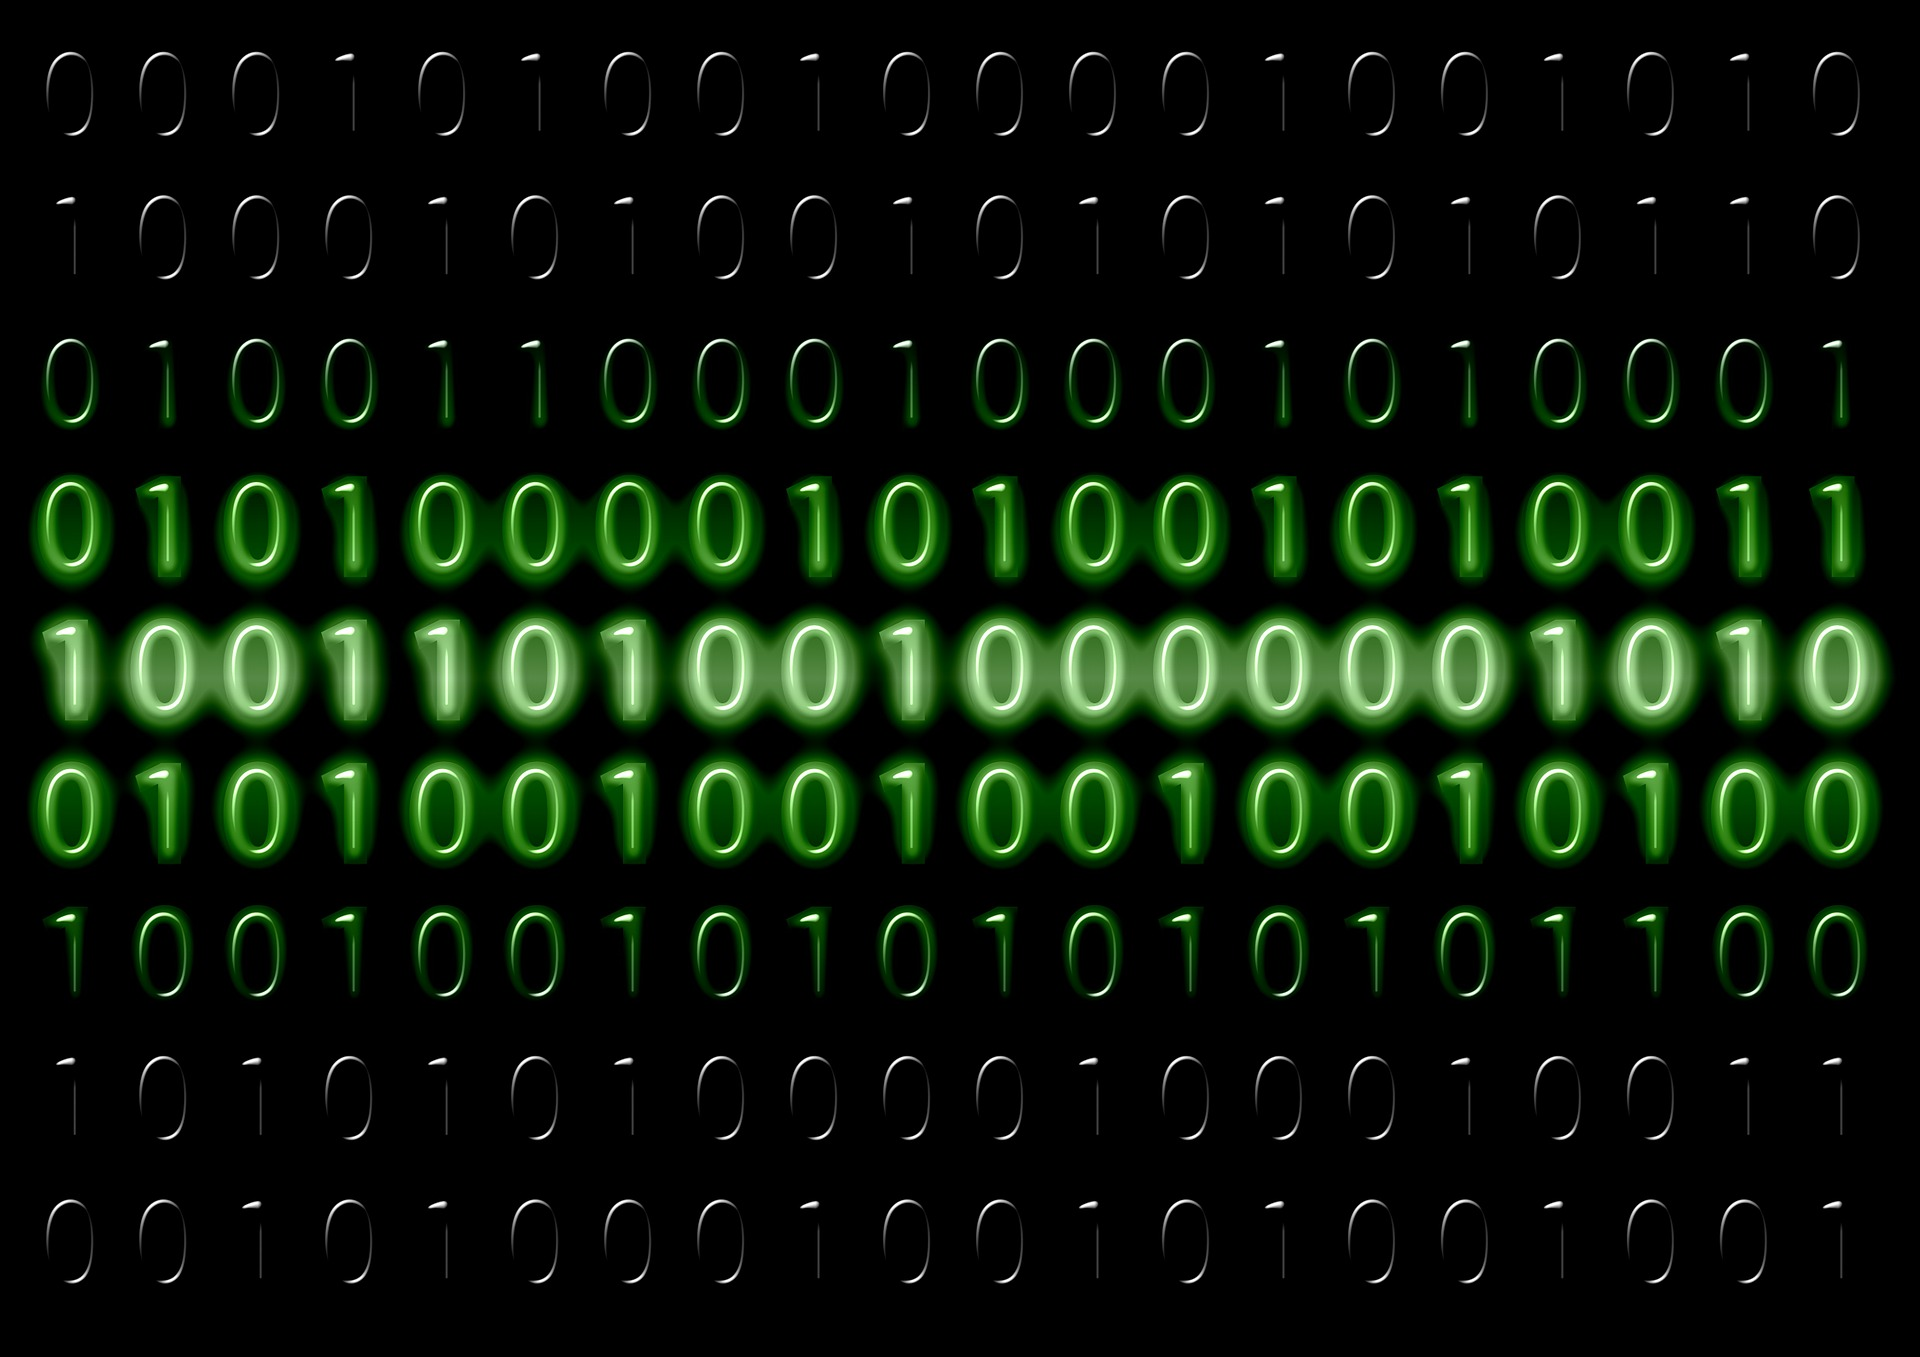 There are 10 types of people, those who understand binary and those who don't. -